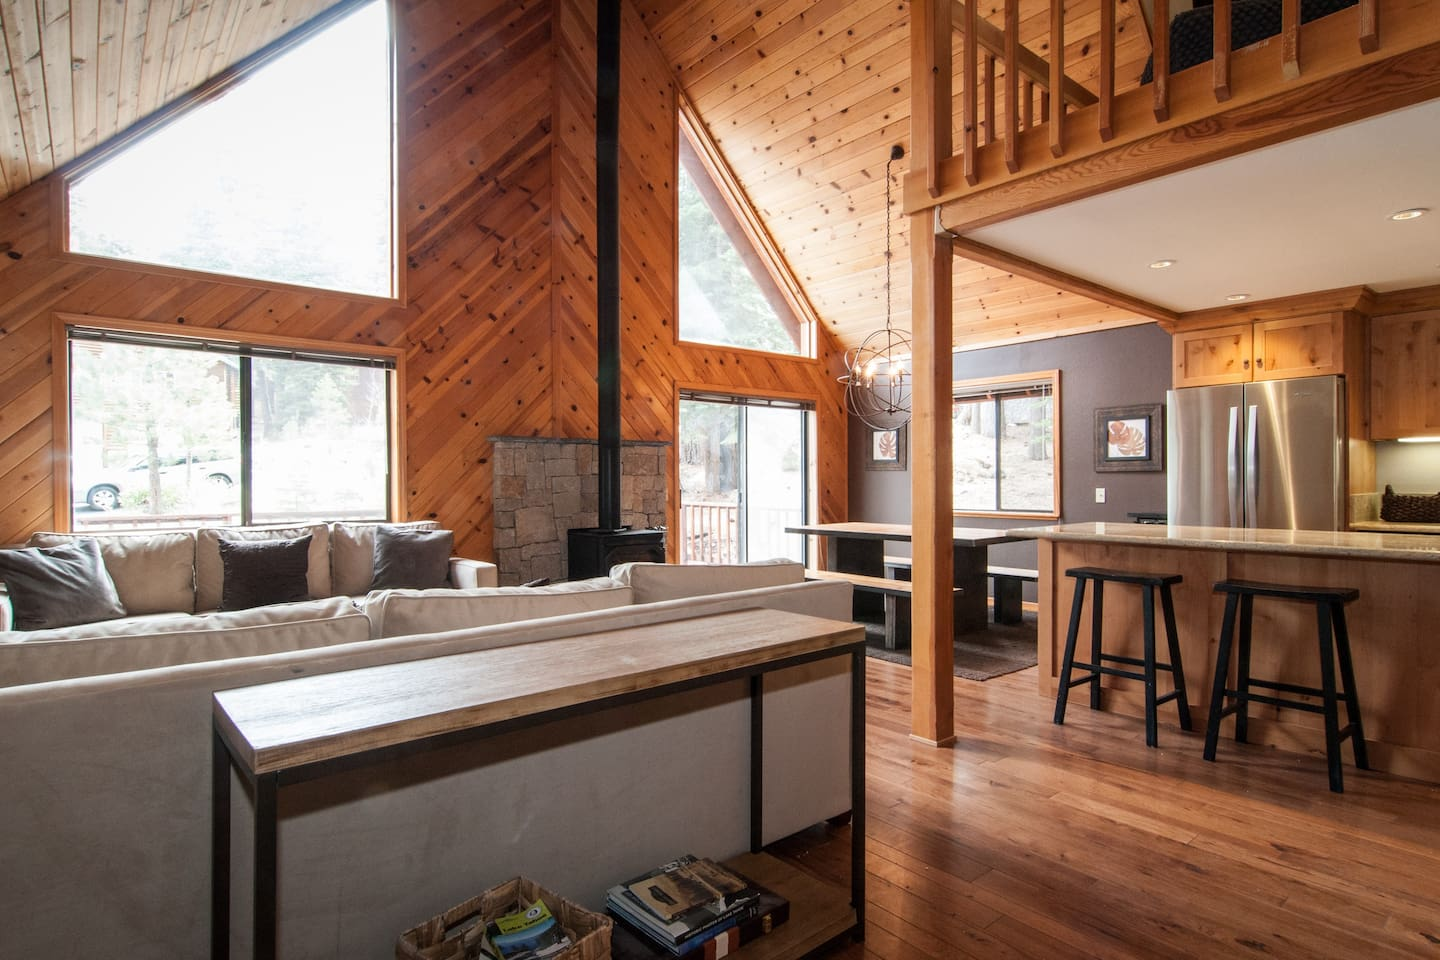 Awesome A-Frame in Tahoe Donner - 3BR, 2BA, sleeps 8.  Perfect little cabin for a family vacation or a getaway with friends.   Completely remodeled with granite countertops, hard wood floors, natural stone bathrooms, stainless appliances.